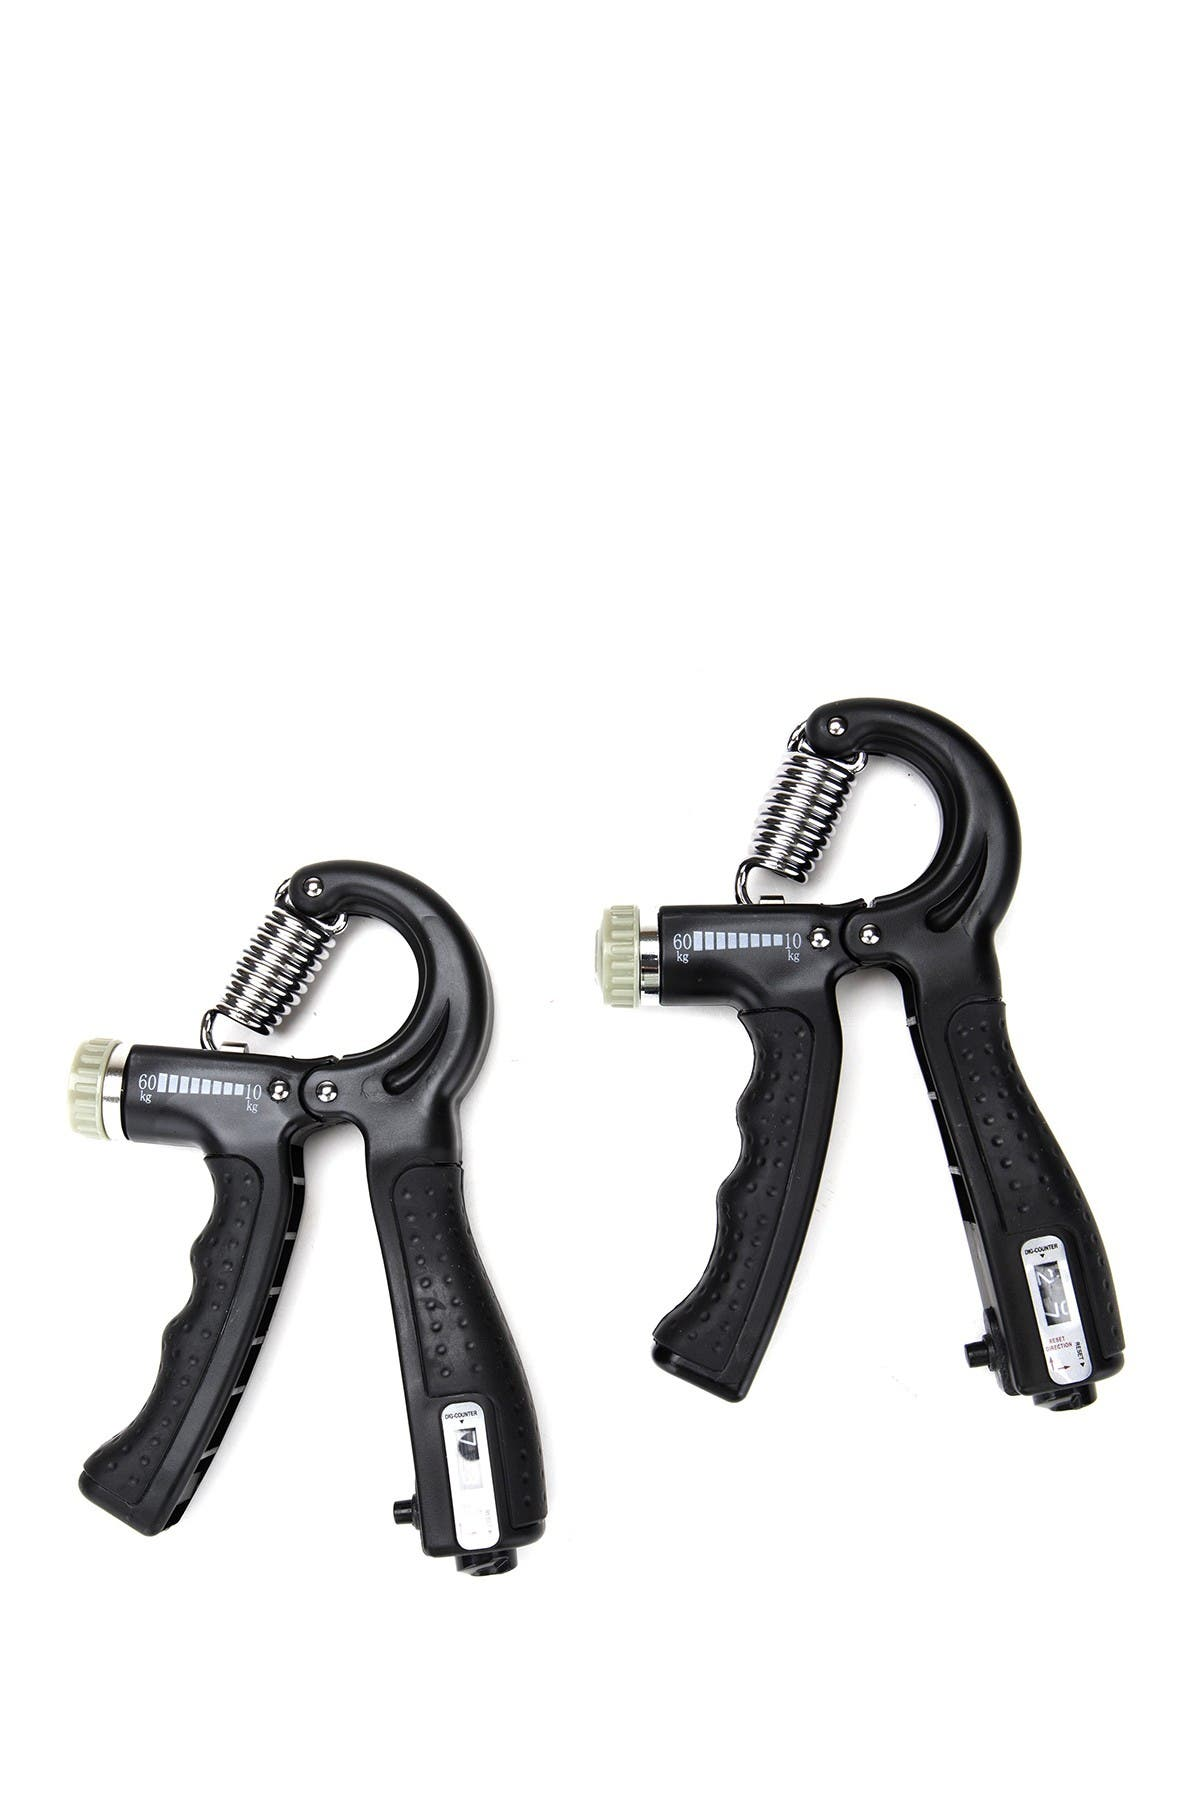 Image of MIND READER Adjustable 22-132 lbs Hand Grip Strengthener with Counter